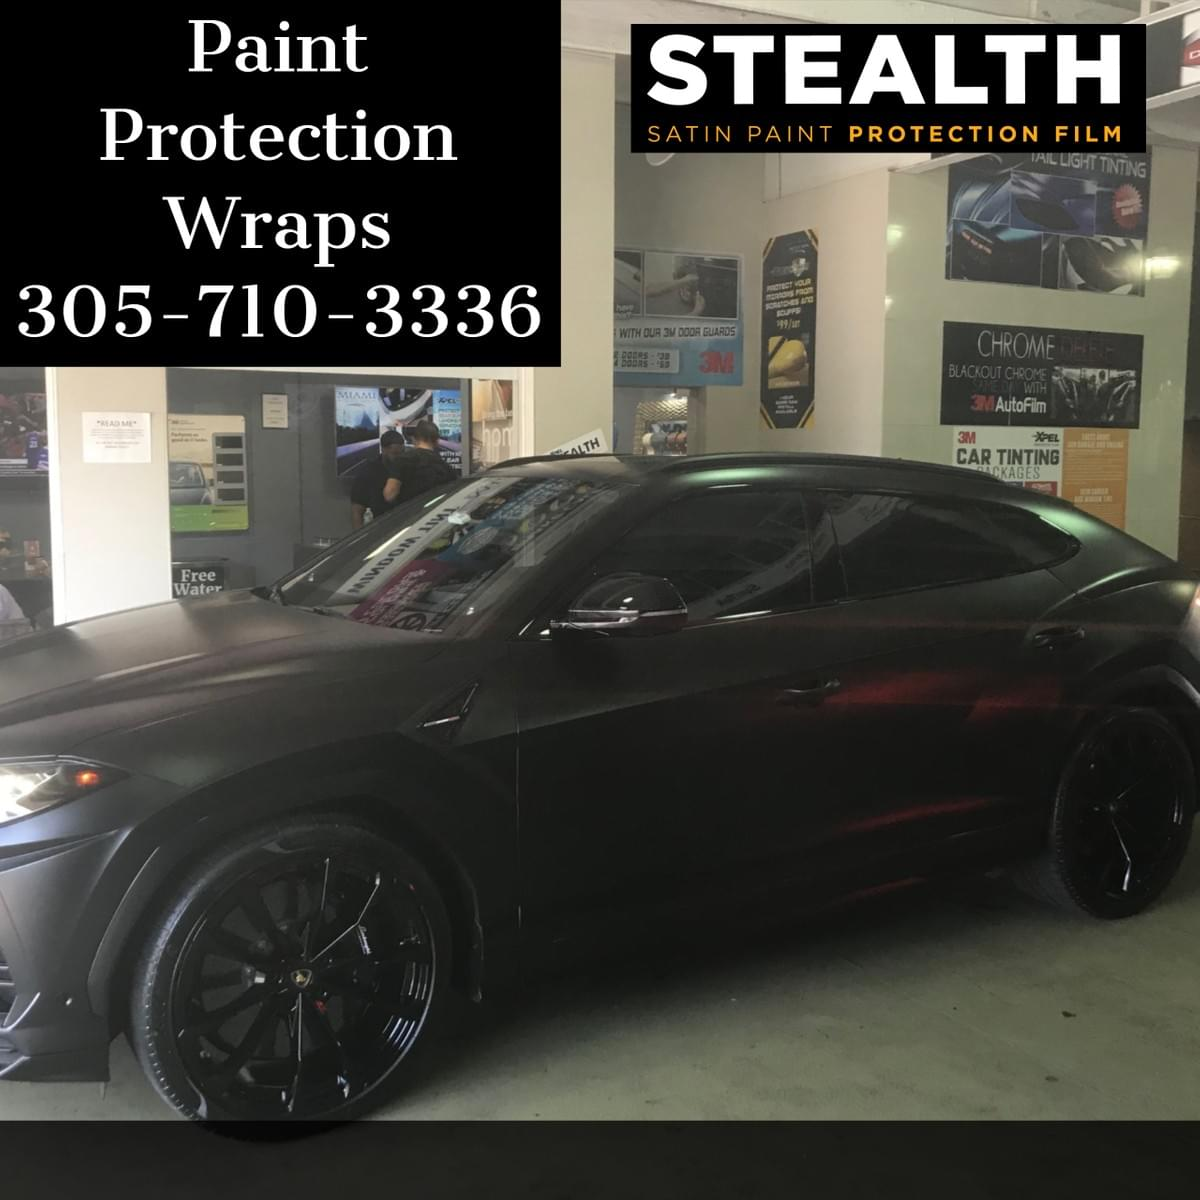 xpelStealth car wrap paint protection Miami 33131, xpel Stealth Wrap car paint protection Miami Beach 33139